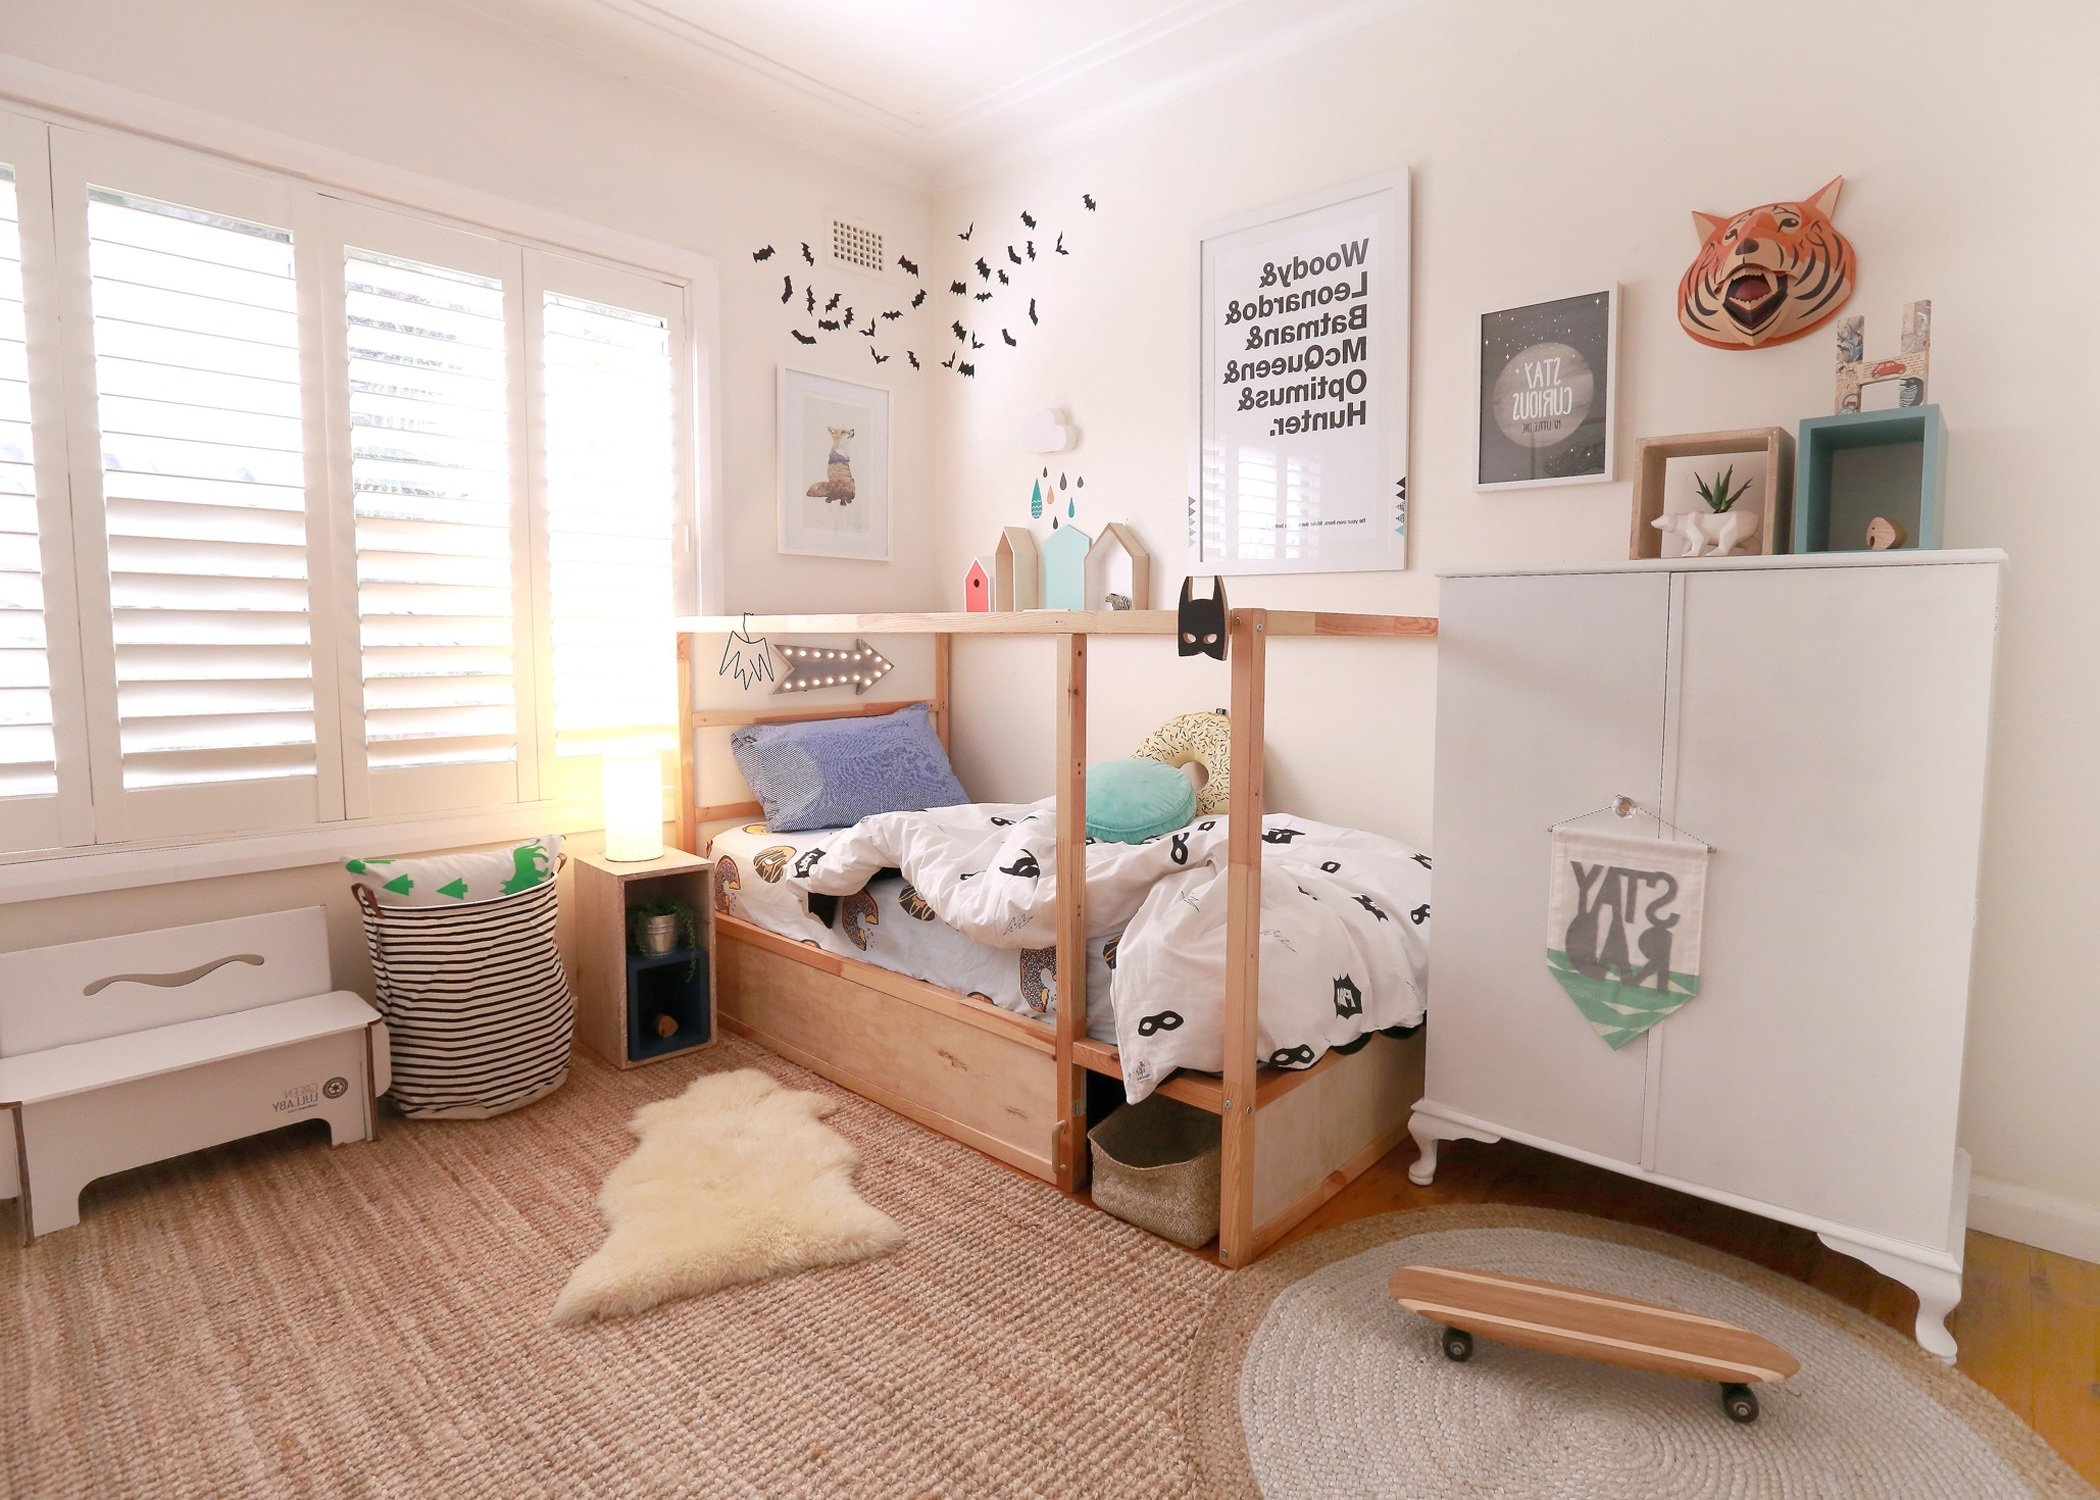 kinderzimmer pimpen 10 diy hacks f r ihr ikea kura bett kinderzimmer zenideen. Black Bedroom Furniture Sets. Home Design Ideas